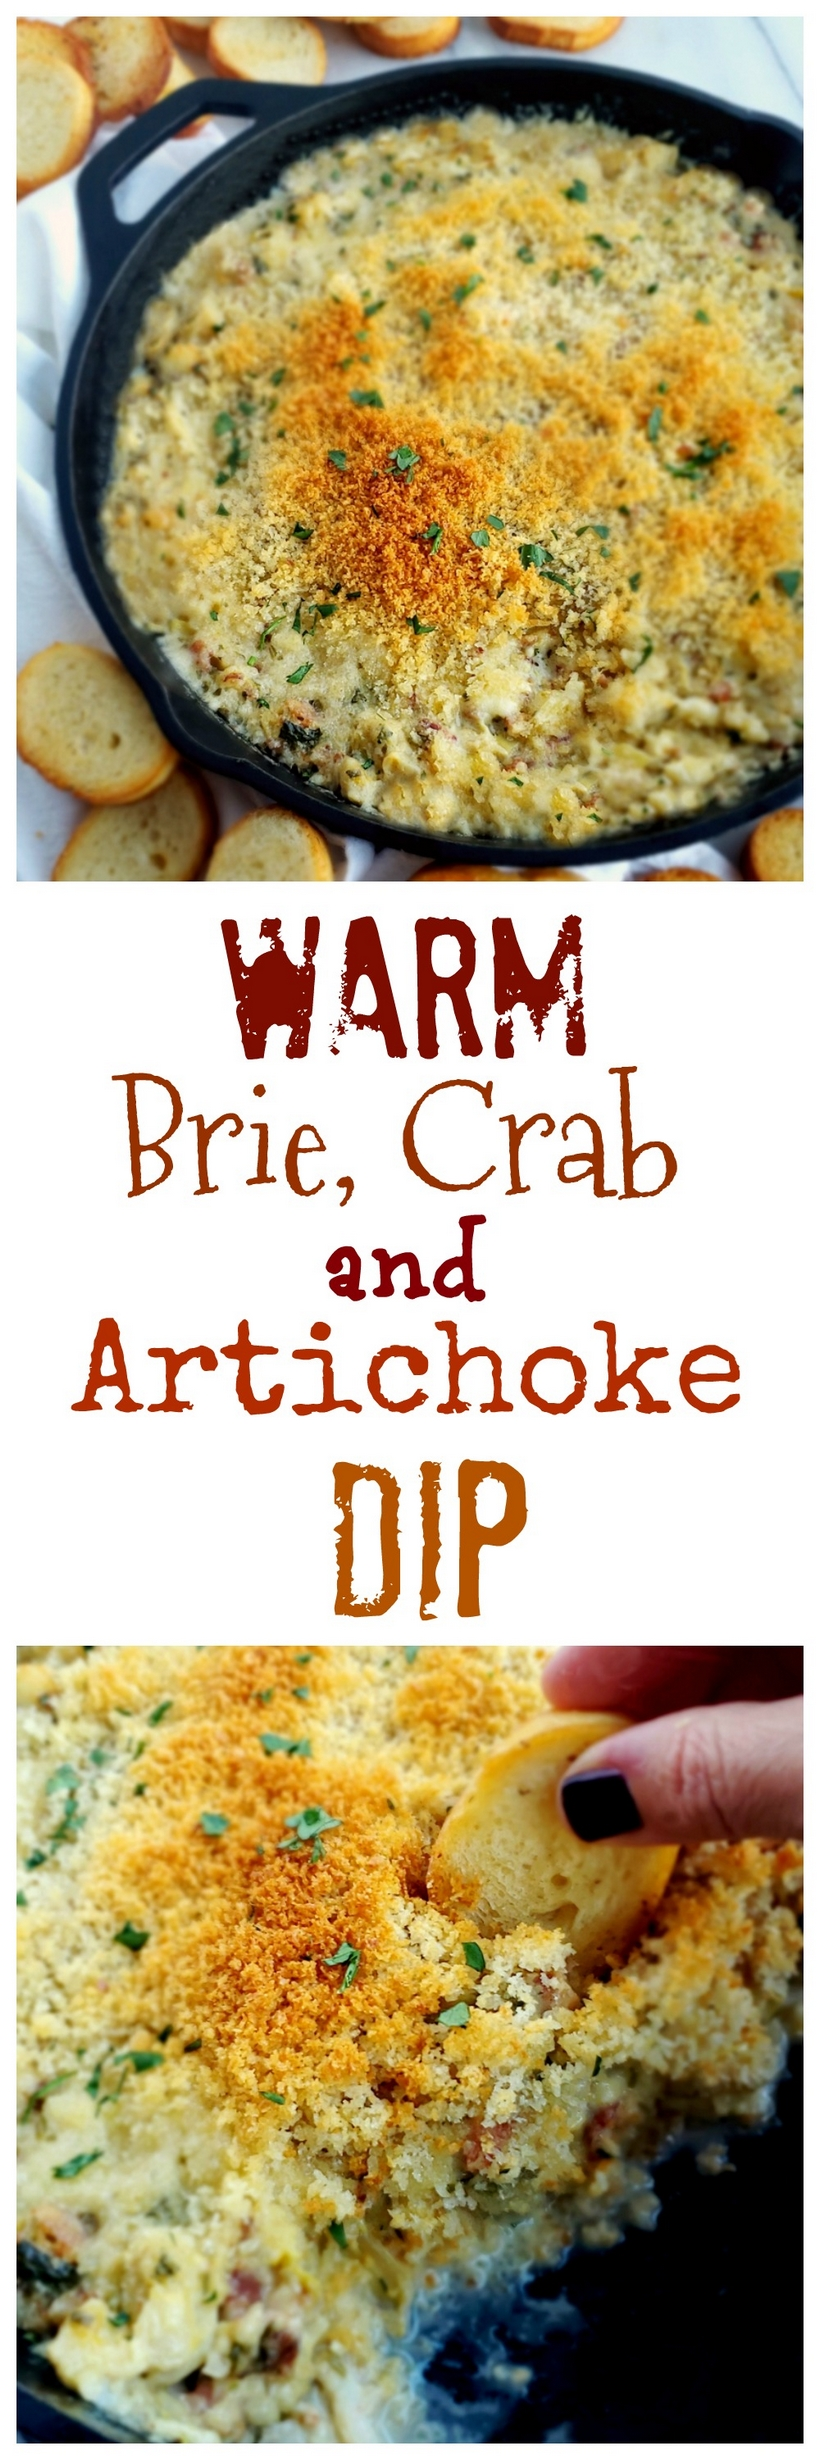 Buttery Brie cheese covered with a layer of baked bread crumbs reveals a hot dip packed with crab, artichoke and bacon. It doesn't get much better than this Warm Brie, Crab and Artichoke Dip! #noblepig #lowcarb #ketorecipe #crabdip